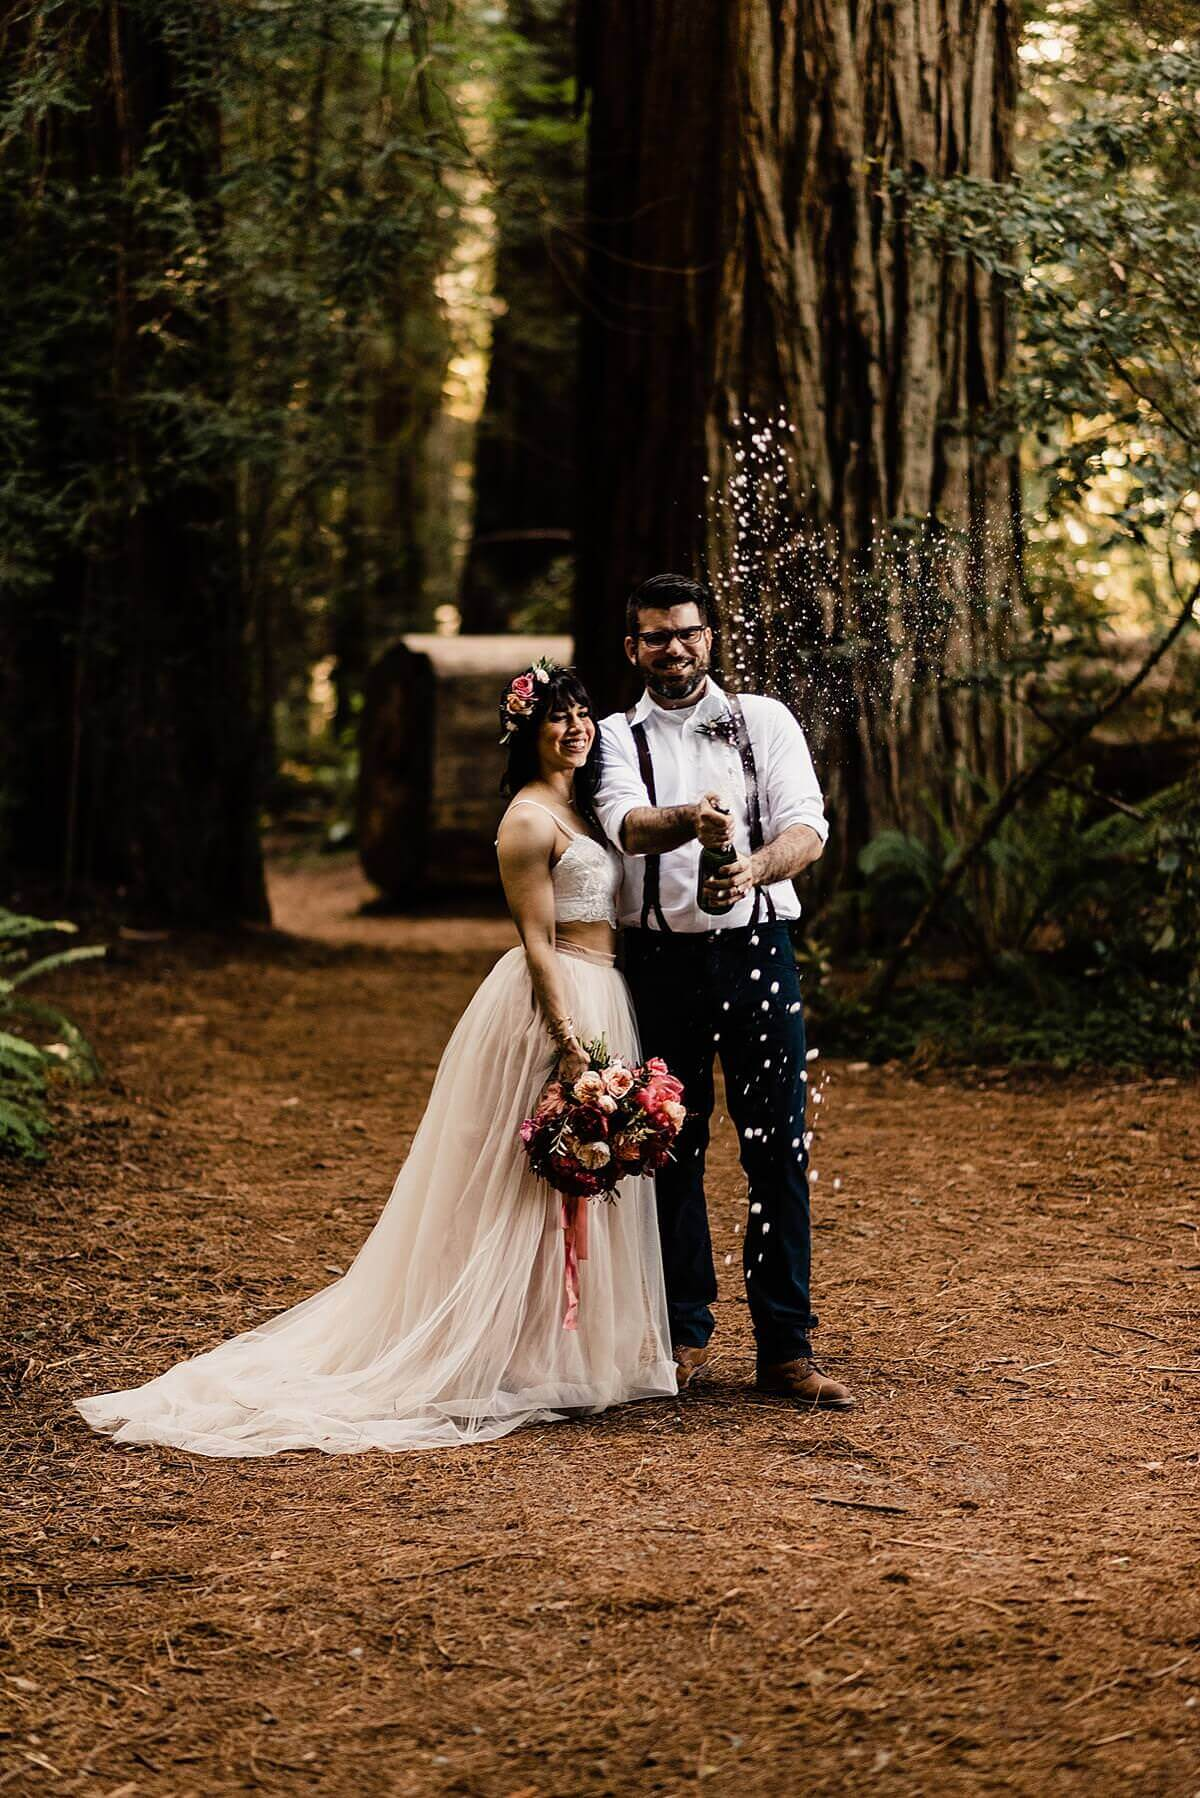 Allison-Brooks-Jedediah-Smiith-Redwoods-Adventure-Elopement-Wedding-S-Photography-Blog_0042.jpg